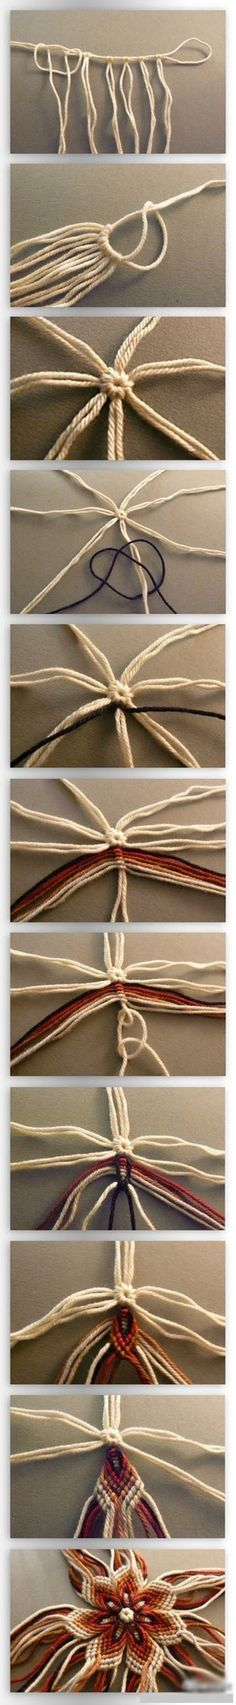 Beautiful Yarn Craft | Click to see More DIY & Crafts Tutorials on Our Site.